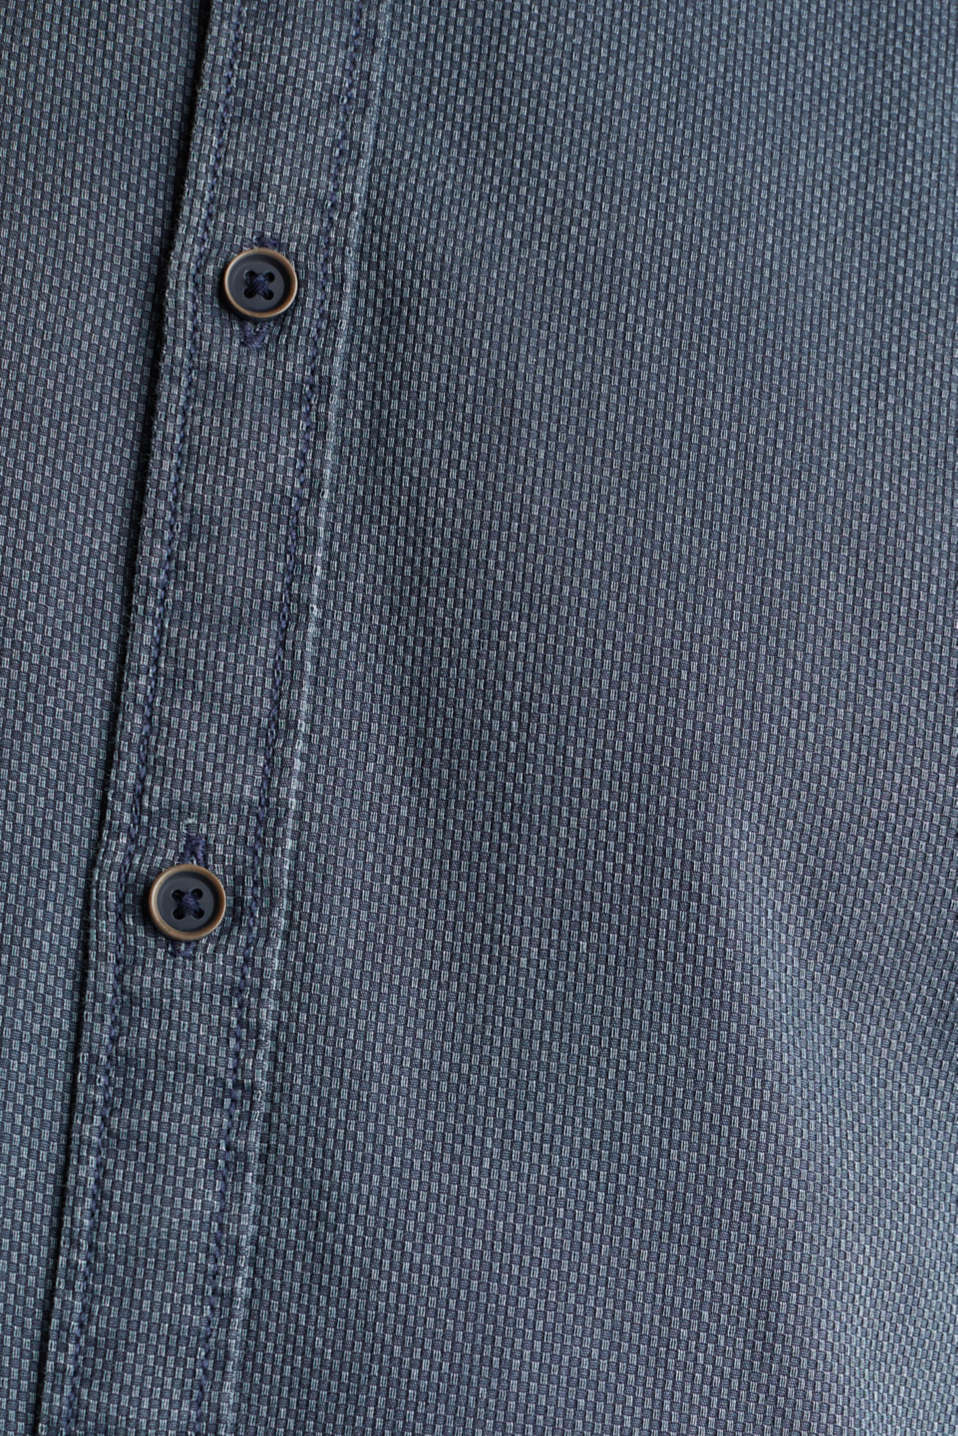 Shirts woven Slim fit, DARK BLUE 5, detail image number 4